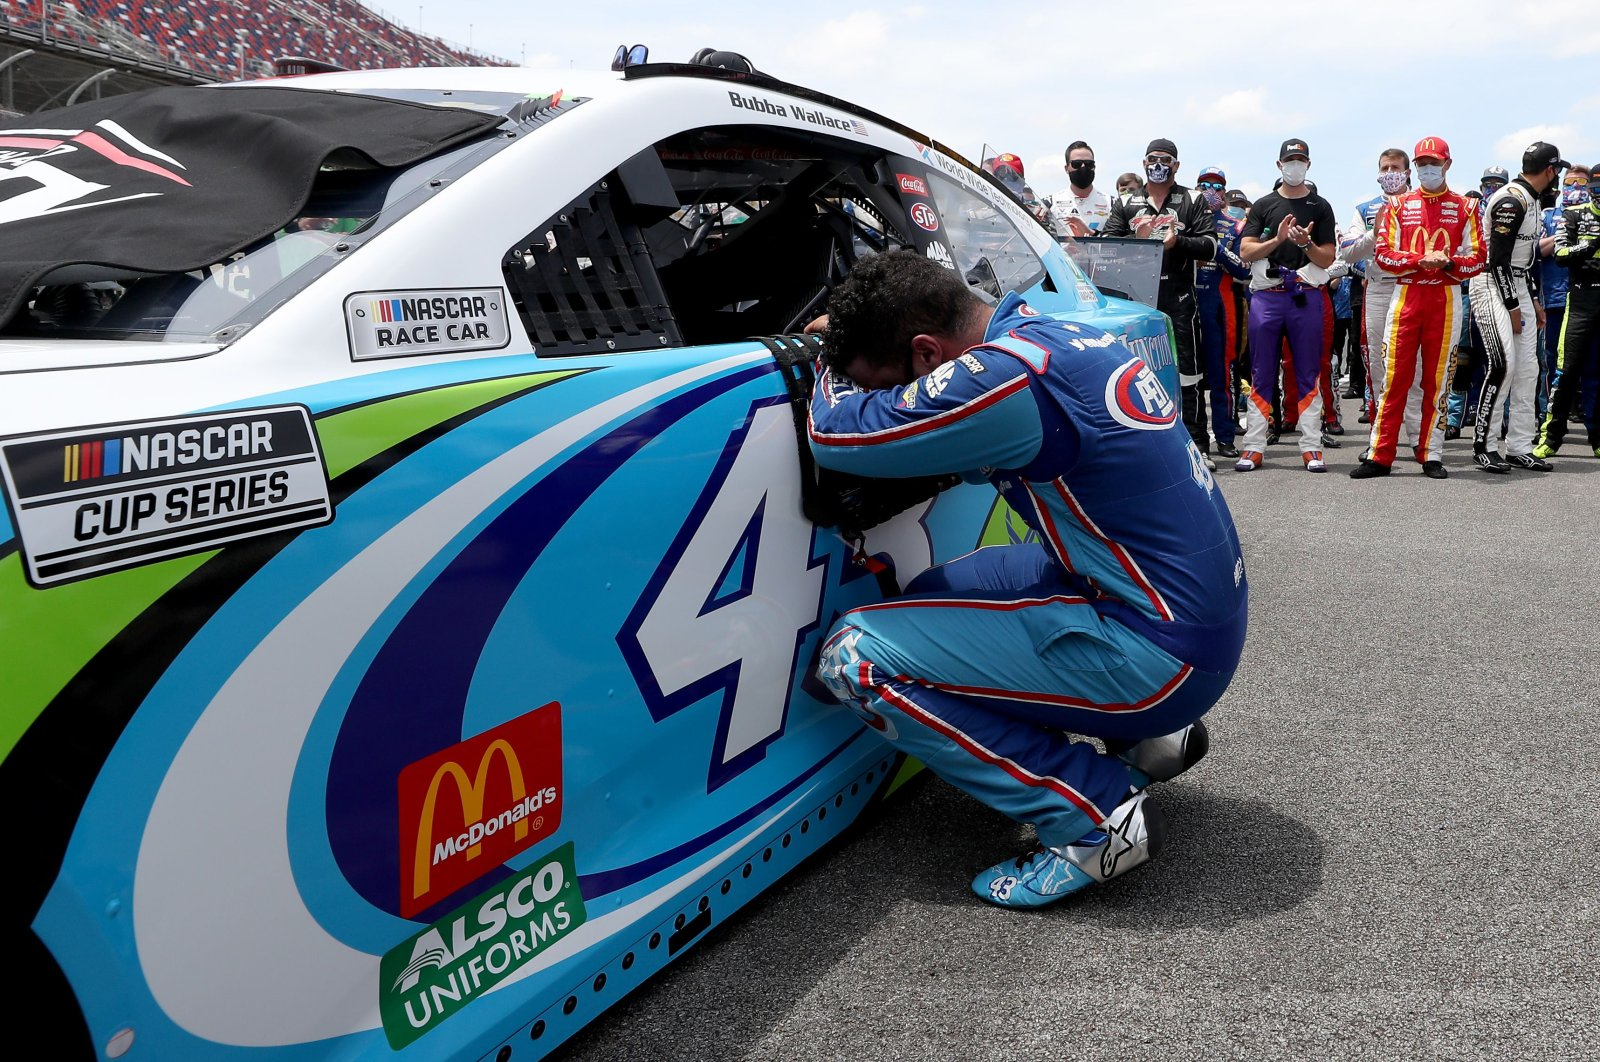 Driver Bubba Wallace overcome with emotion prior to the start of the NASCAR Cup Series auto race in Talladega Alabama, U.S., June 22, 2020. (AFP Photo)